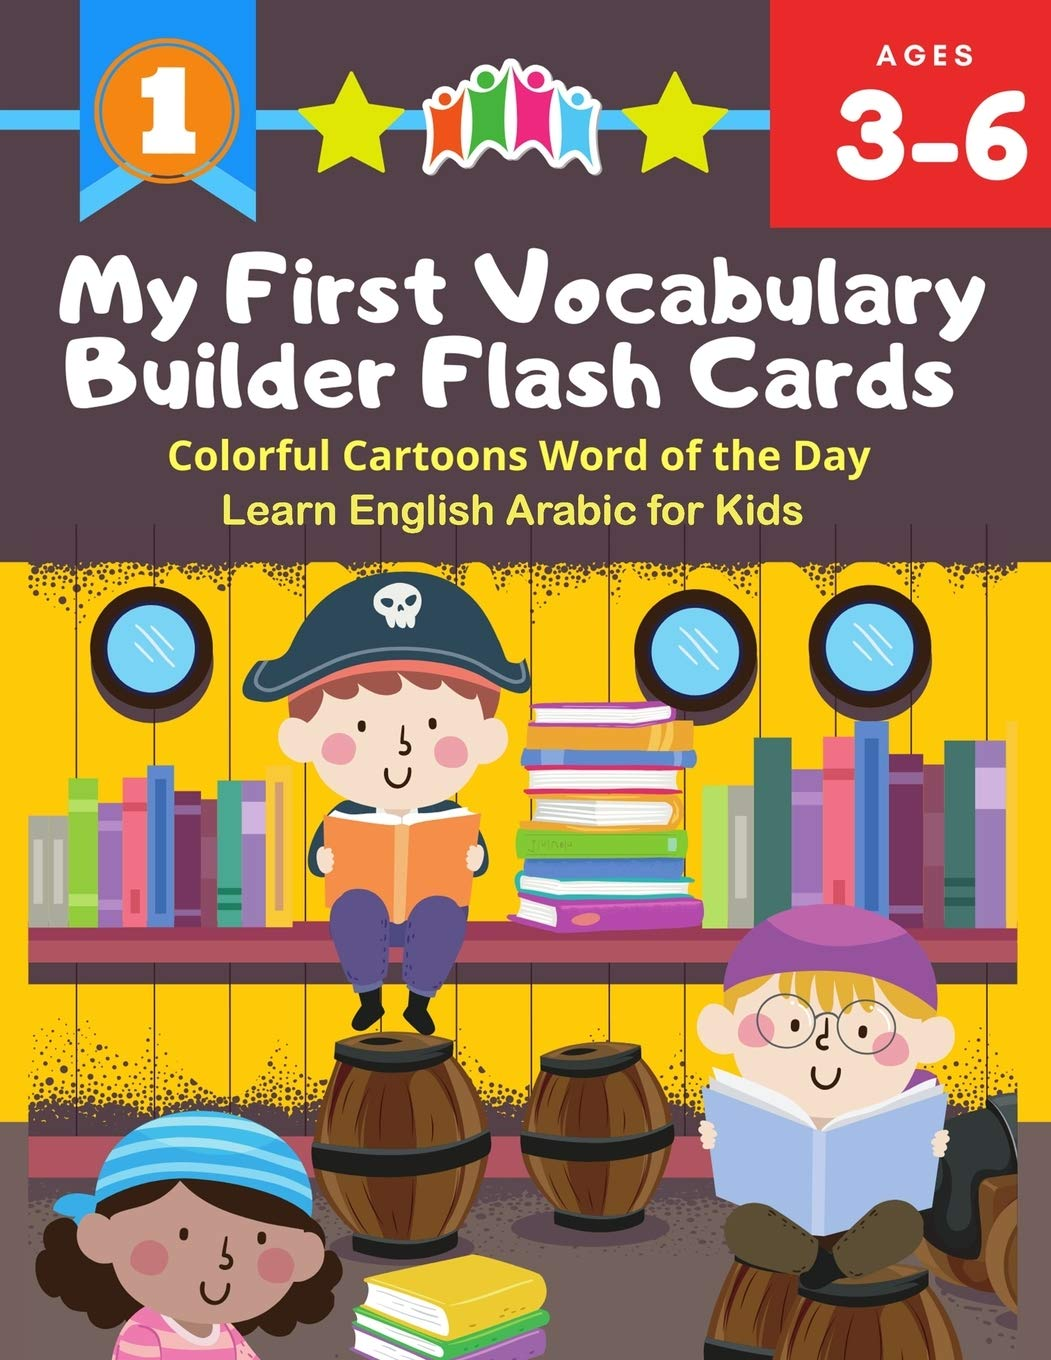 Amazon Com My First Vocabulary Builder Flash Cards Colorful Cartoons Word Of The Day Learn English Arabic For Kids 250 Easy Learning Resources Kindergarten Distance Learning Teacher Created 9798638051129 Berlincon Samuel Books